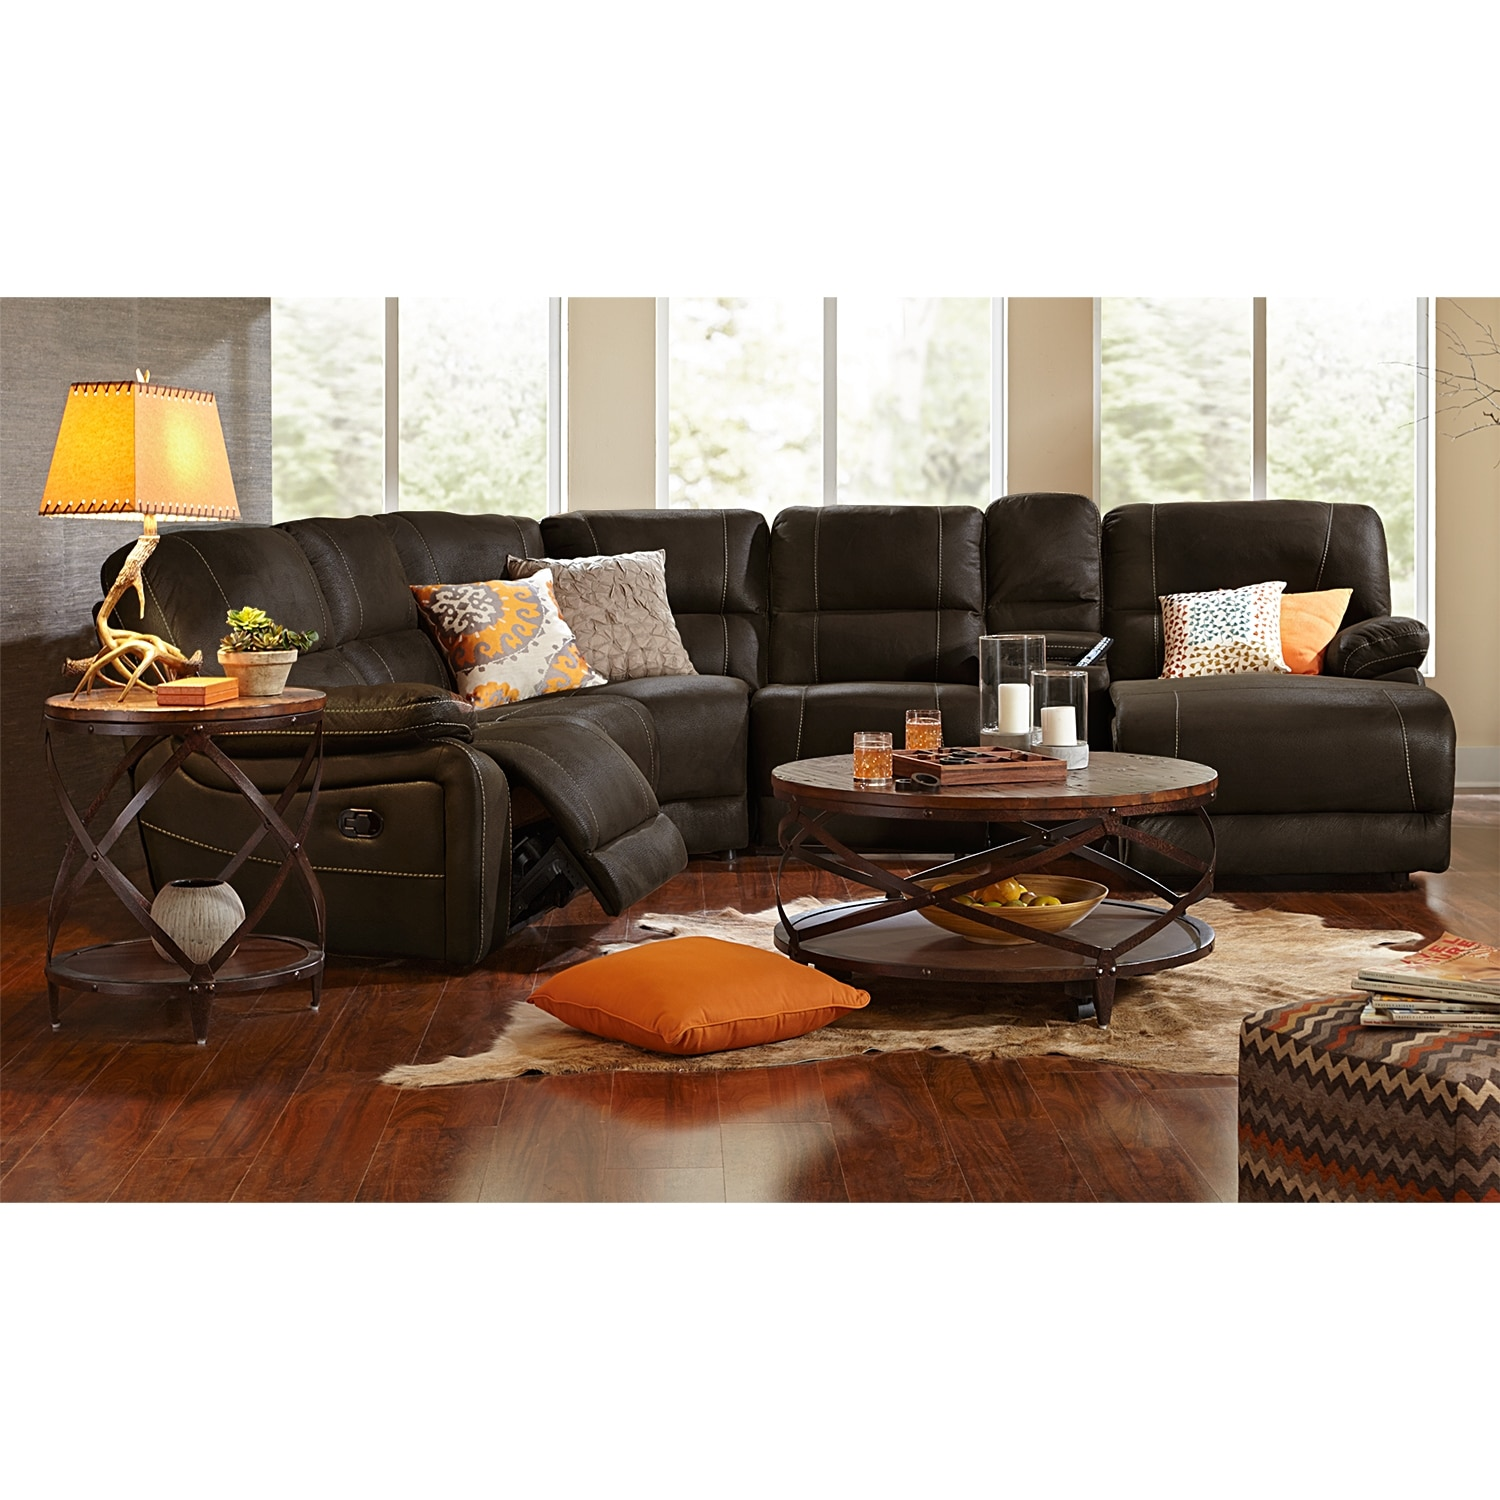 Value City Furniture Store Living Room Sets Zion Star